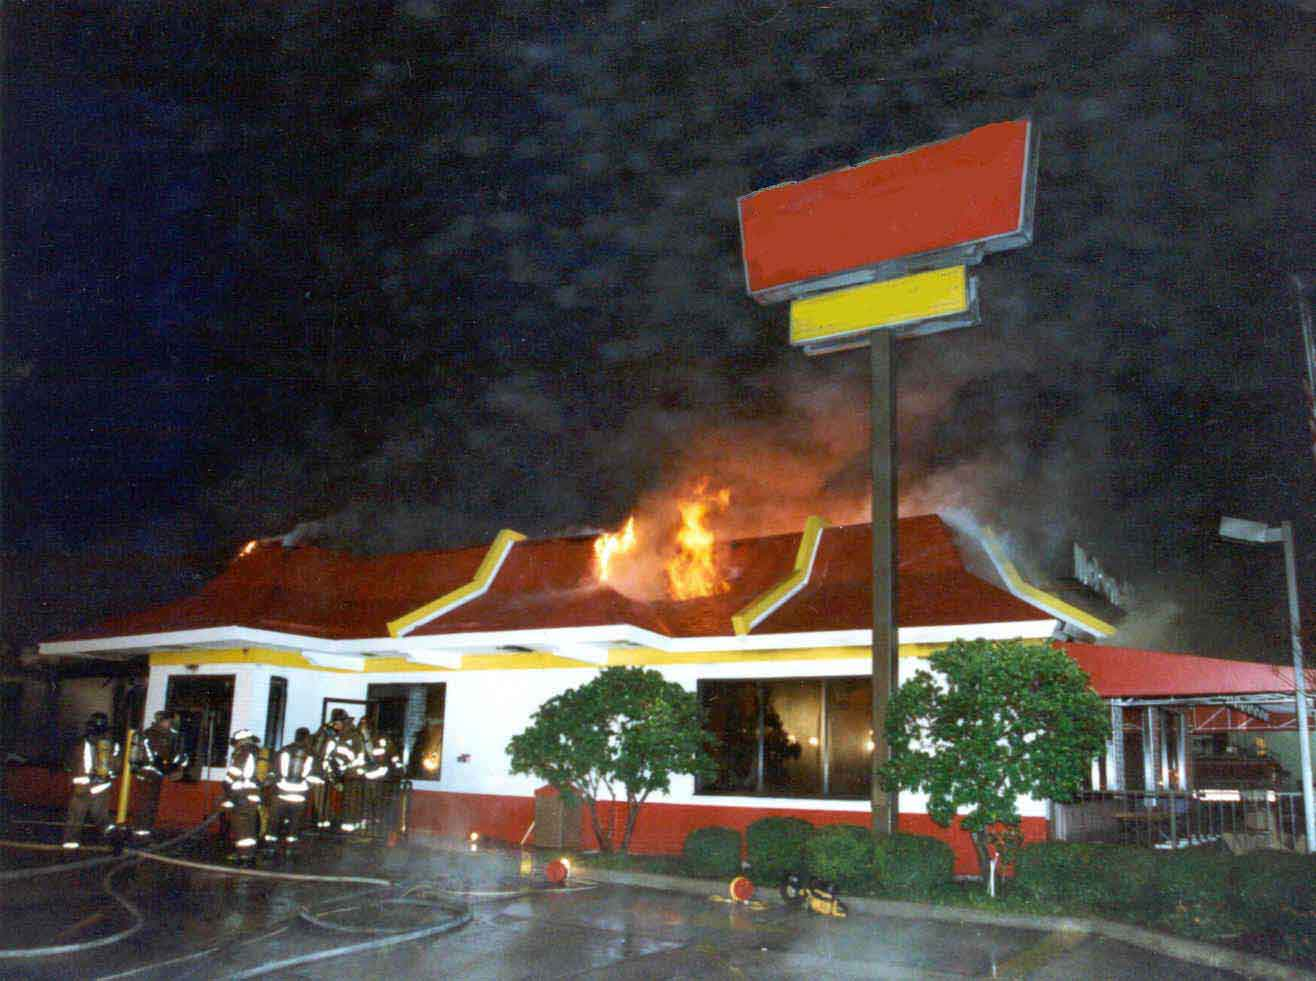 Photo 9: Exterior view of the restaurant fire at the approximate time the roof collapsed.